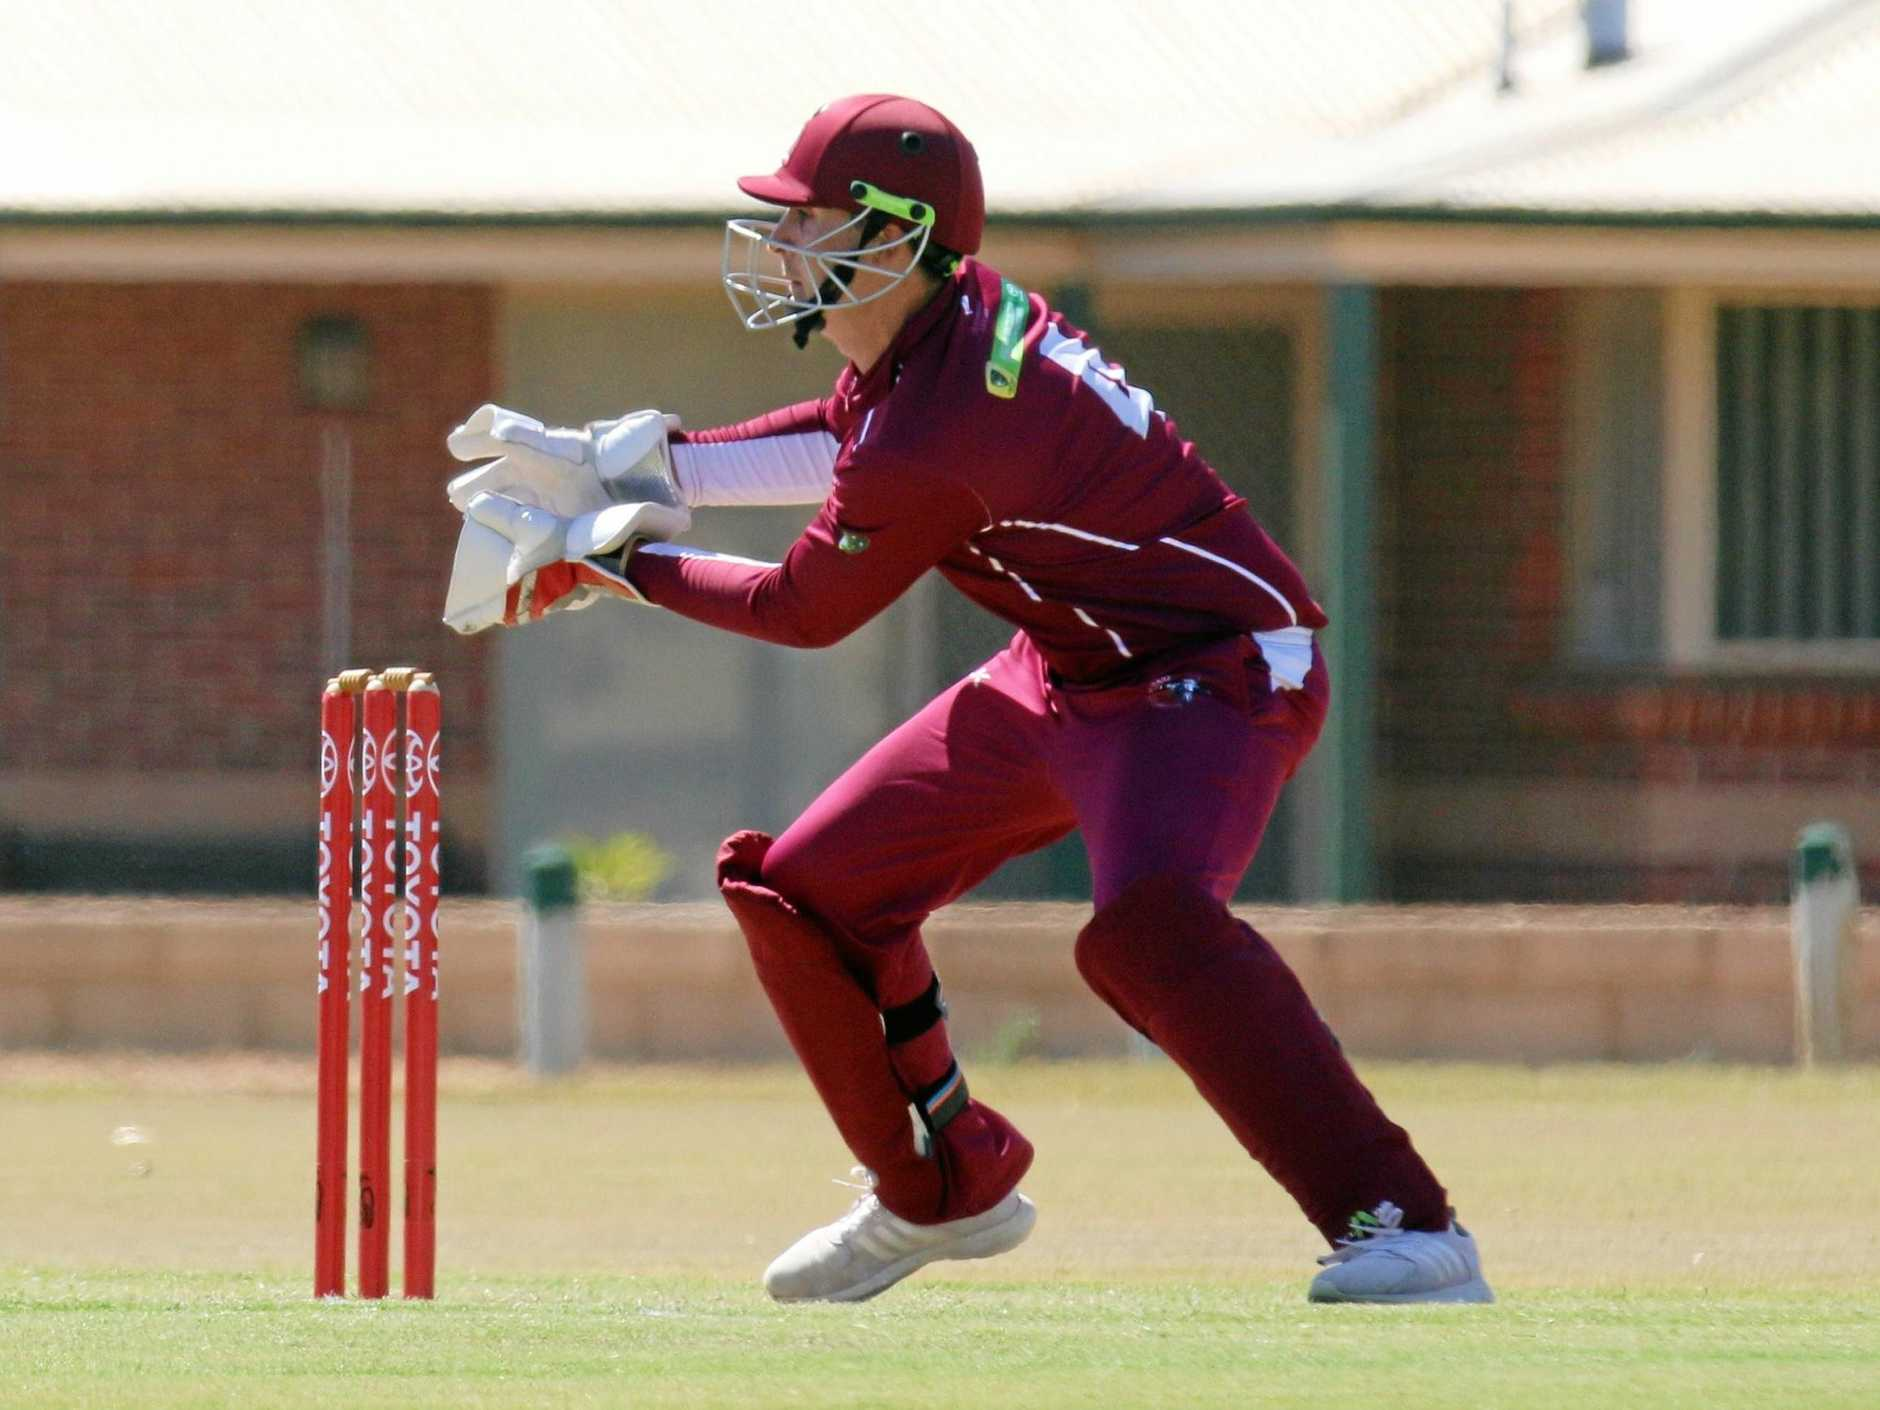 Toowoomba's Chris Hall on debut as Qld Country's wicket keeper.